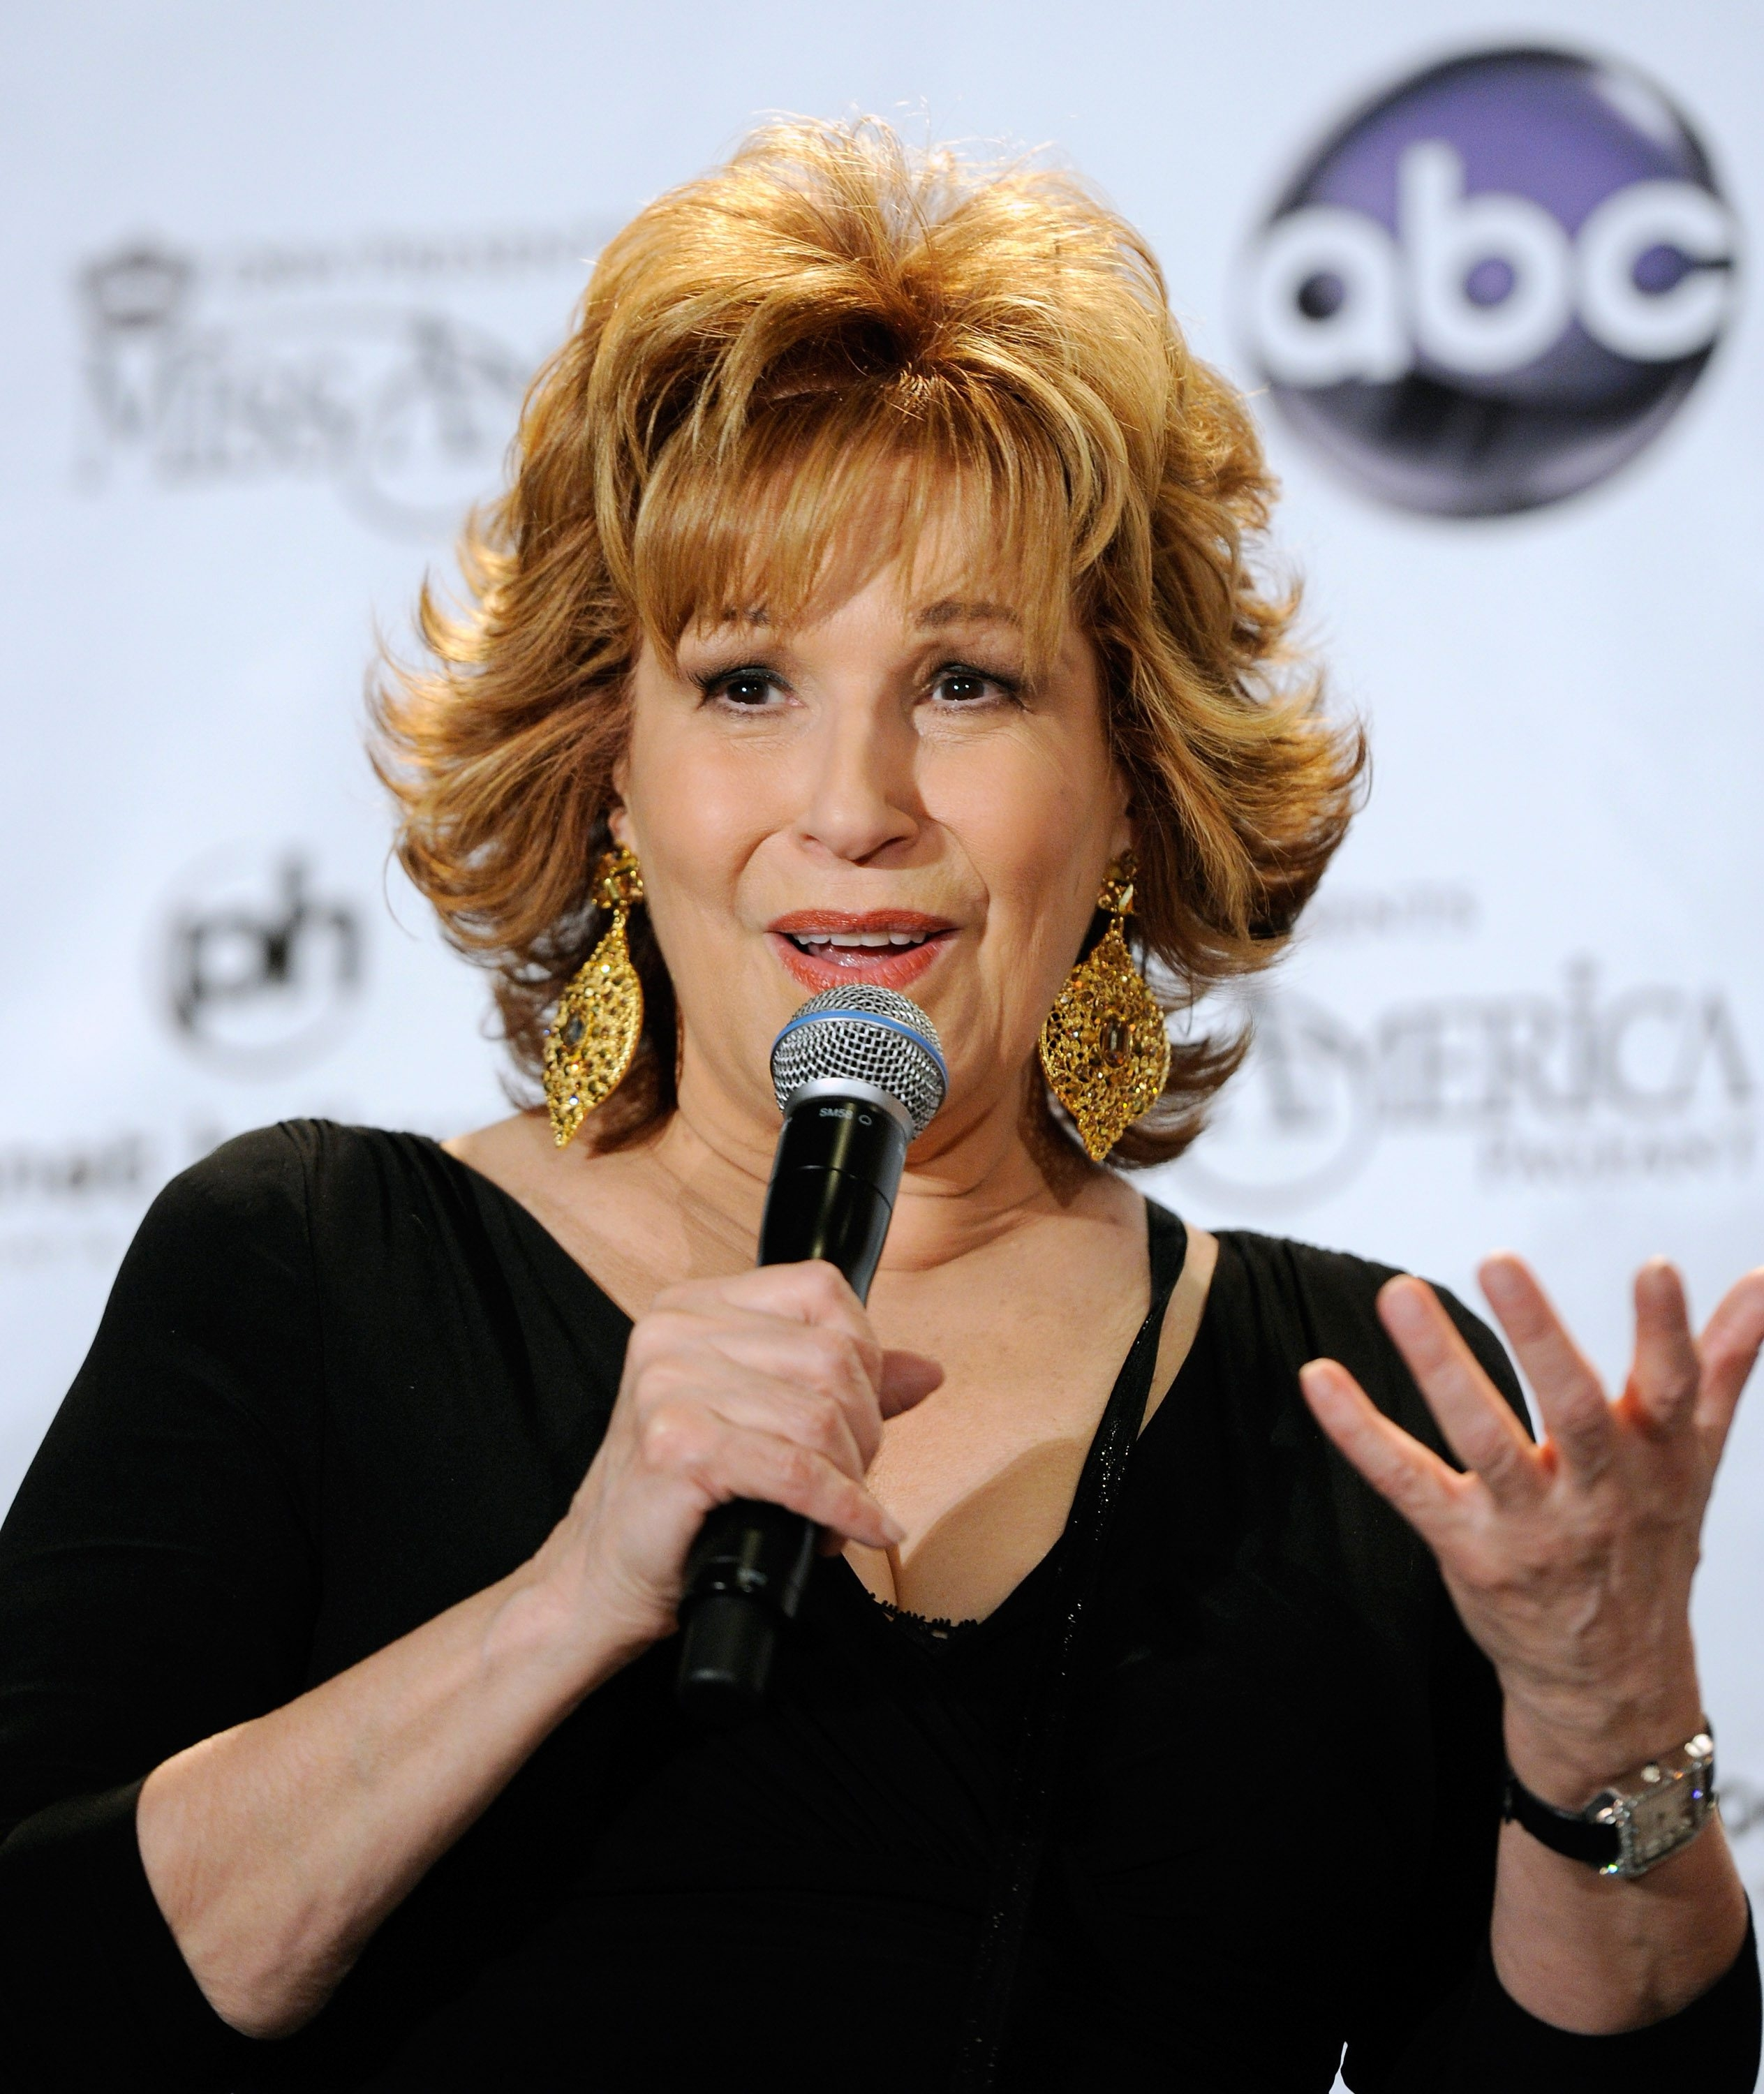 LAS VEGAS, NV – JANUARY 15:  Talk show host and comedian Joy Behar speaks during a news conference for newly-crowned Miss America Teresa Scanlan at the 2011 Miss America Pageant at the Planet Hollywood Resort & Casino January 15, 2011 in Las Vegas, Nevada. Behar served as a pageant judge.  (Photo by Ethan Miller/Getty Images) *** Local Caption *** Joy Behar *** Local Caption *** Joy Behar